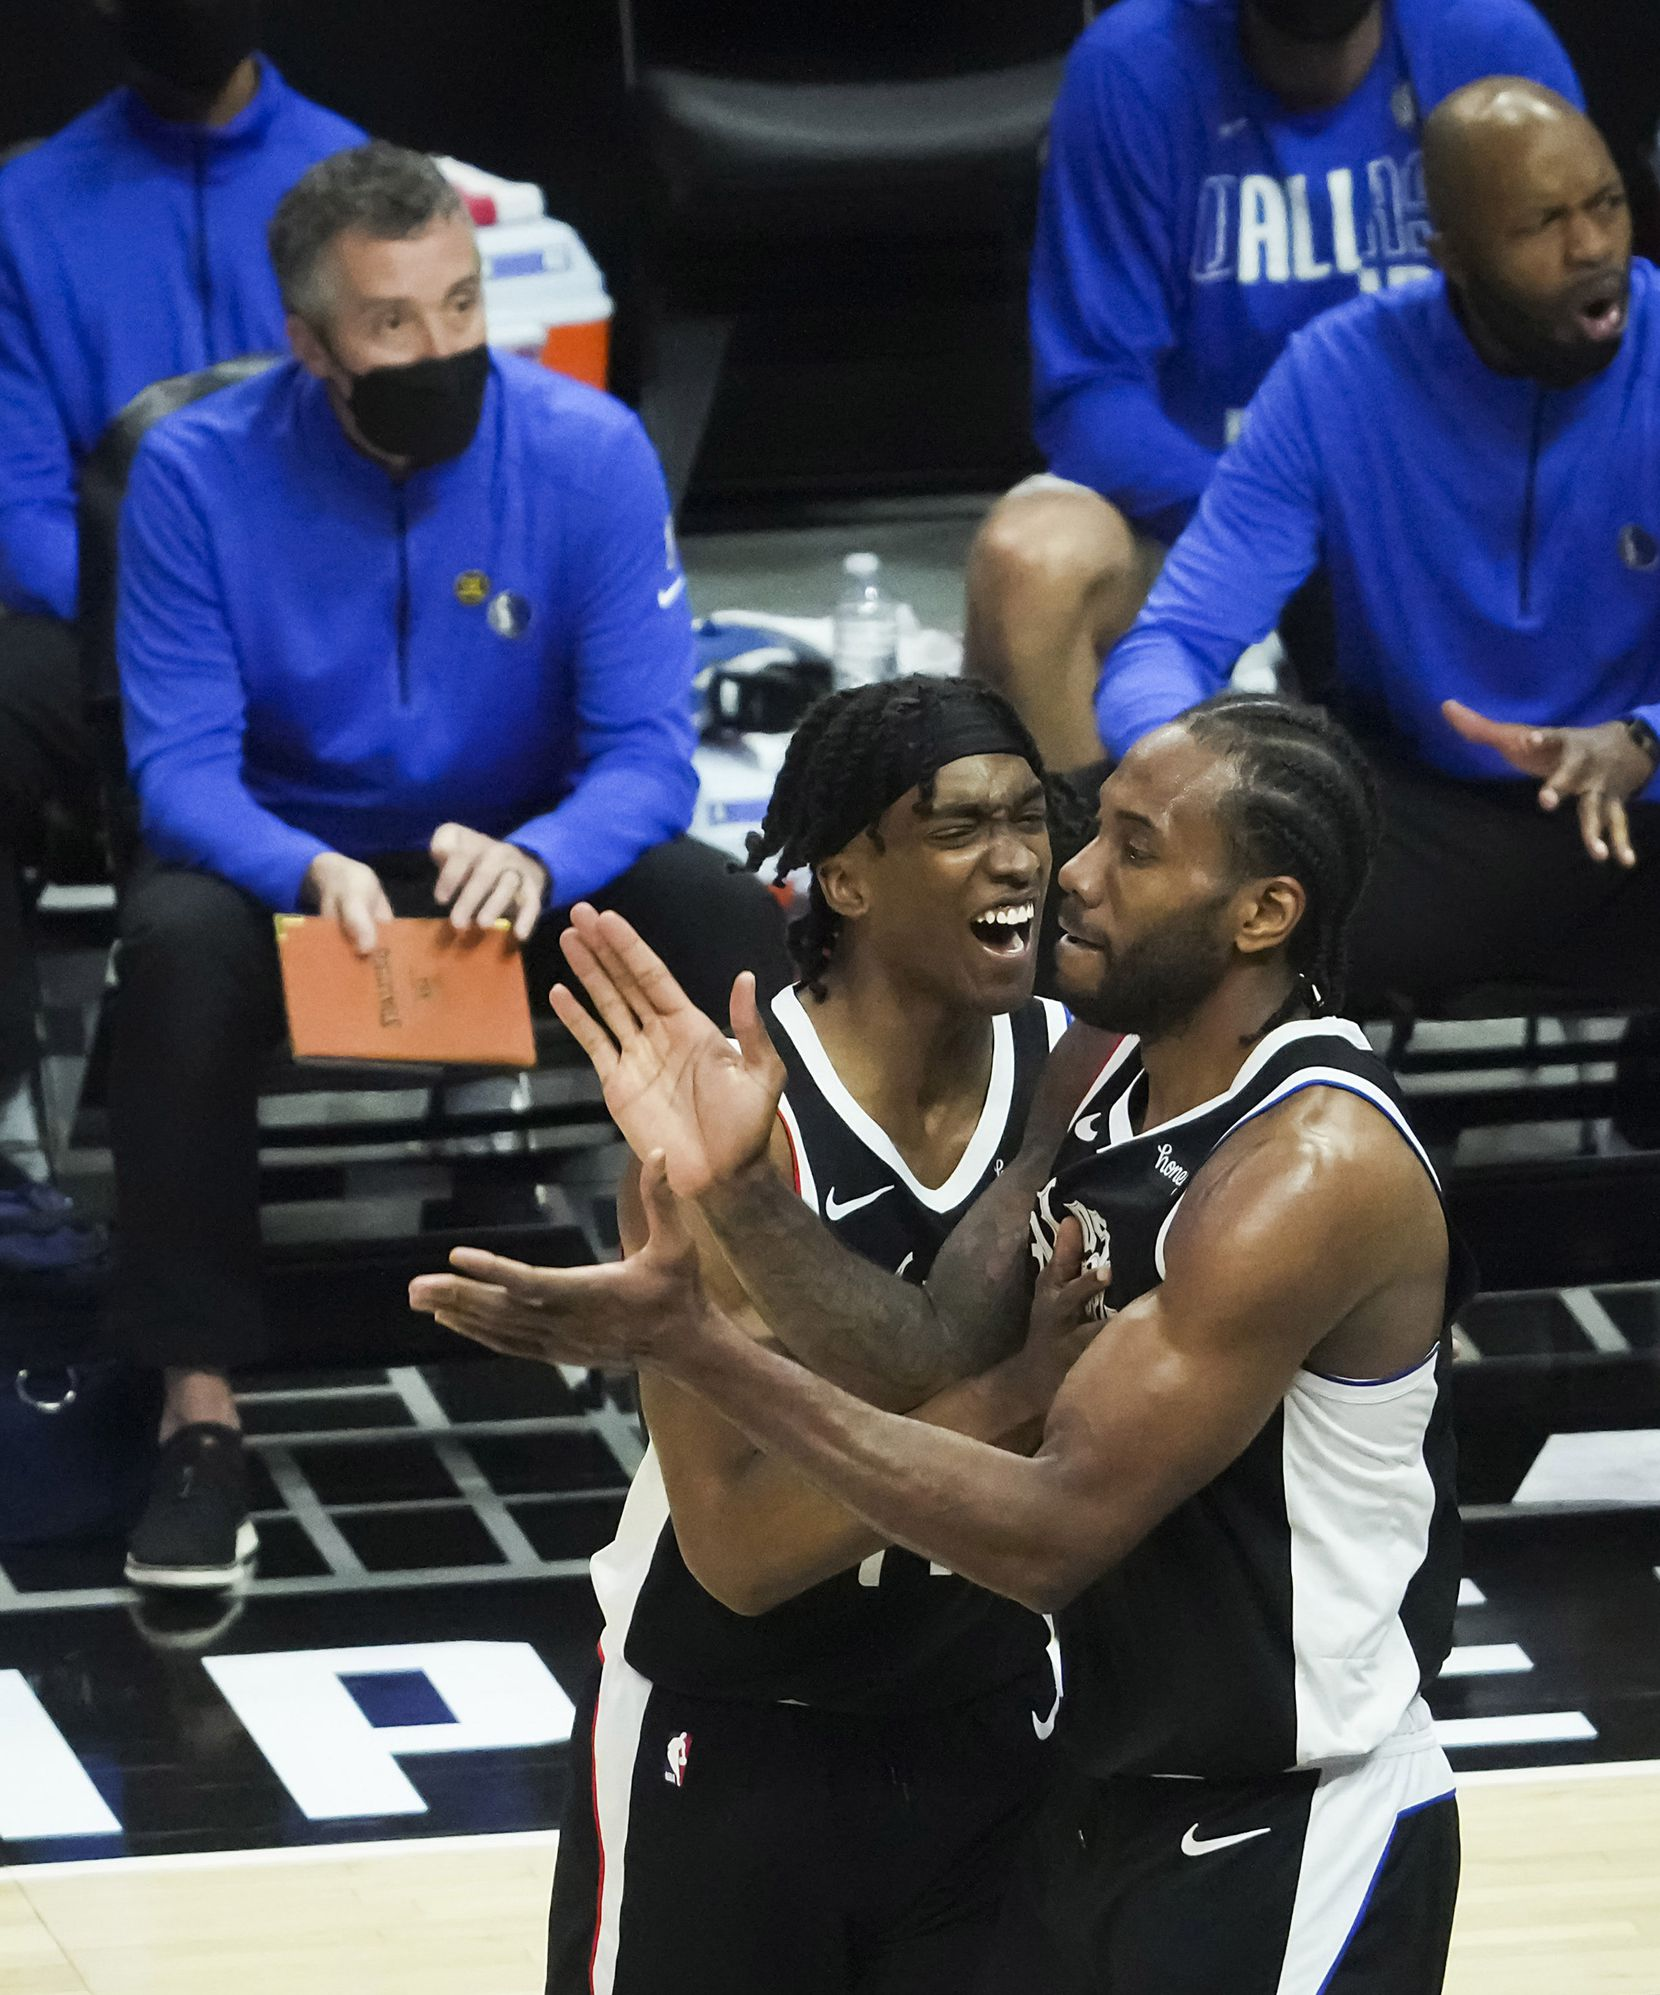 LA Clippers forward Kawhi Leonard (2) celebrates with guard Terance Mann (14) after a basket during the fourth quarter of Game 7 of an NBA playoff series against the Dallas Mavericks at the Staples Center on Sunday, June 6, 2021, in Los Angeles.